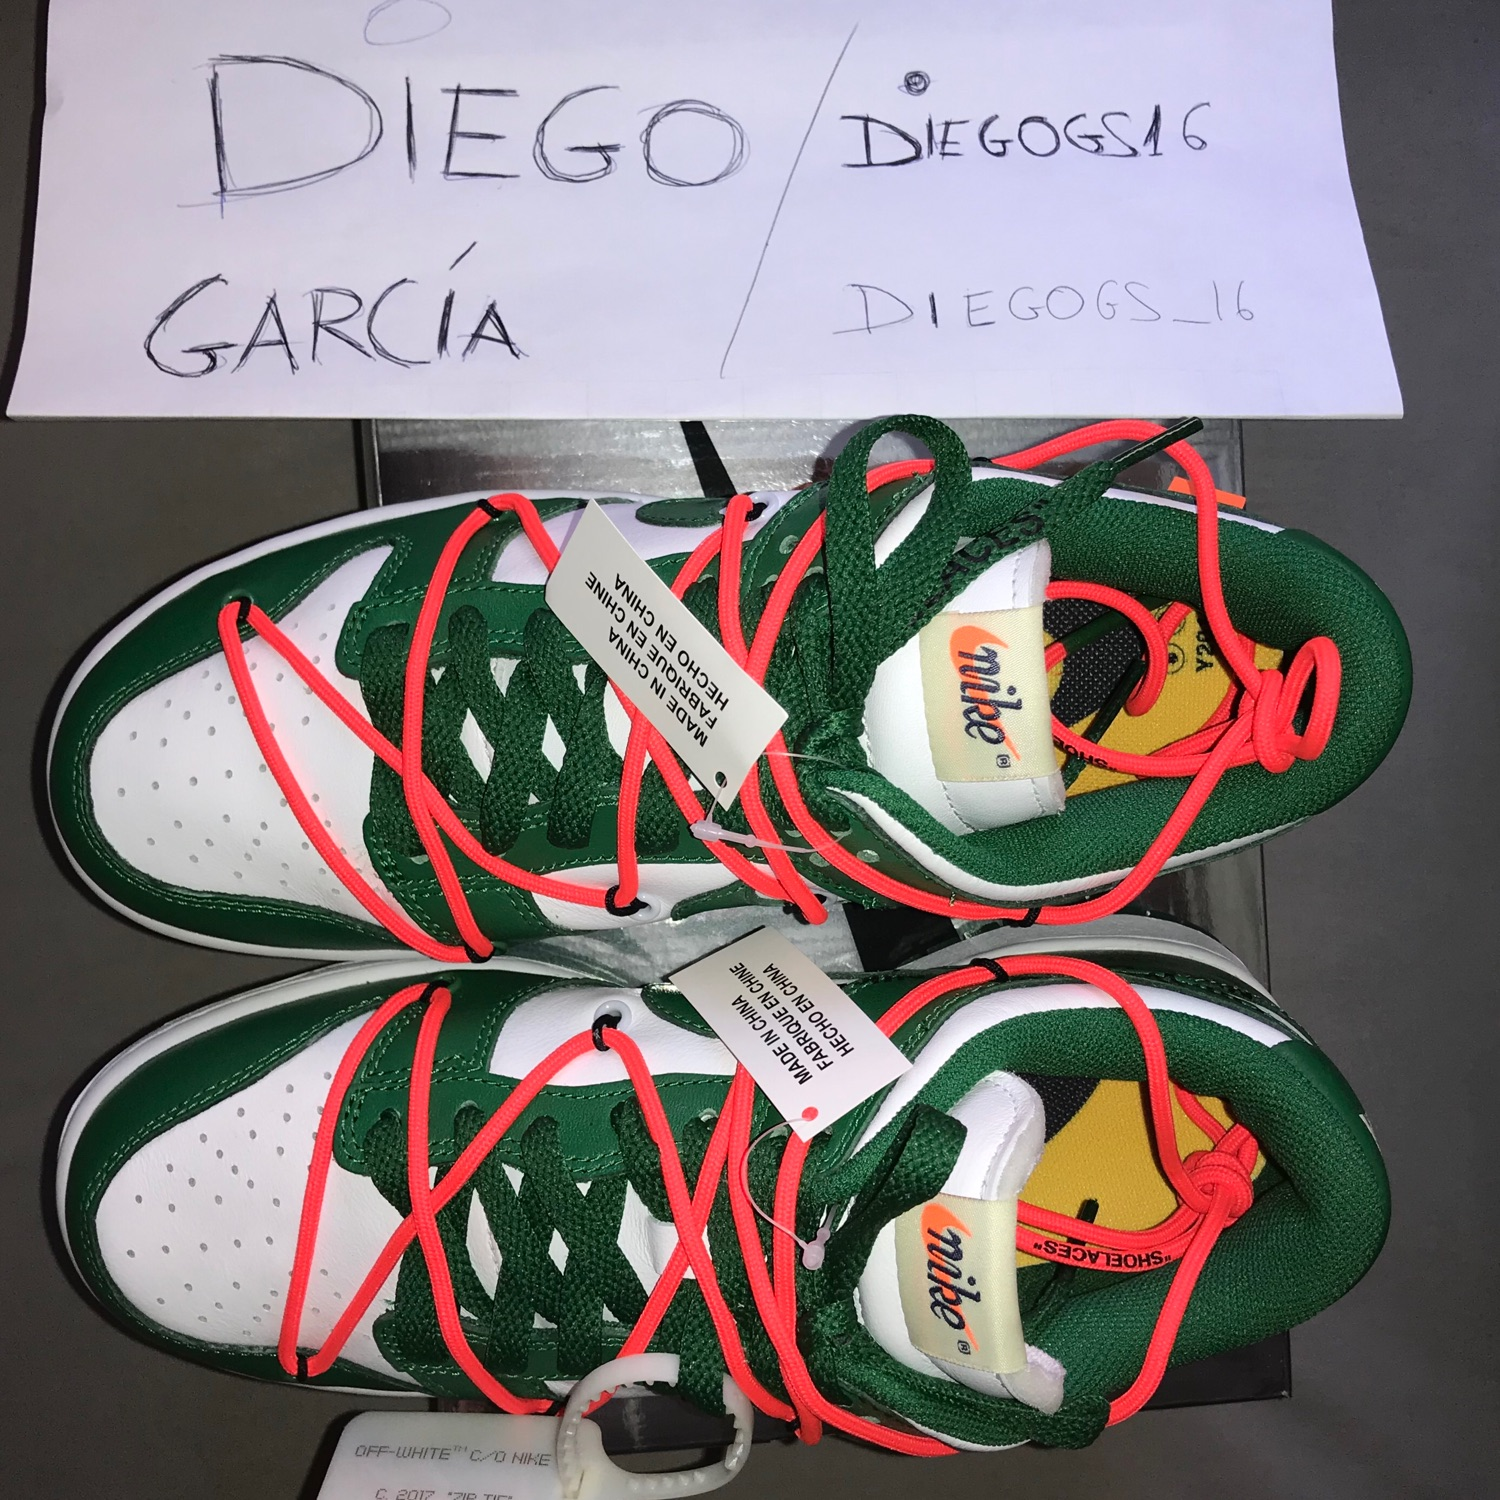 Wts Vendo Nike Dunk Off White Green 7,5 Us/ 40,5